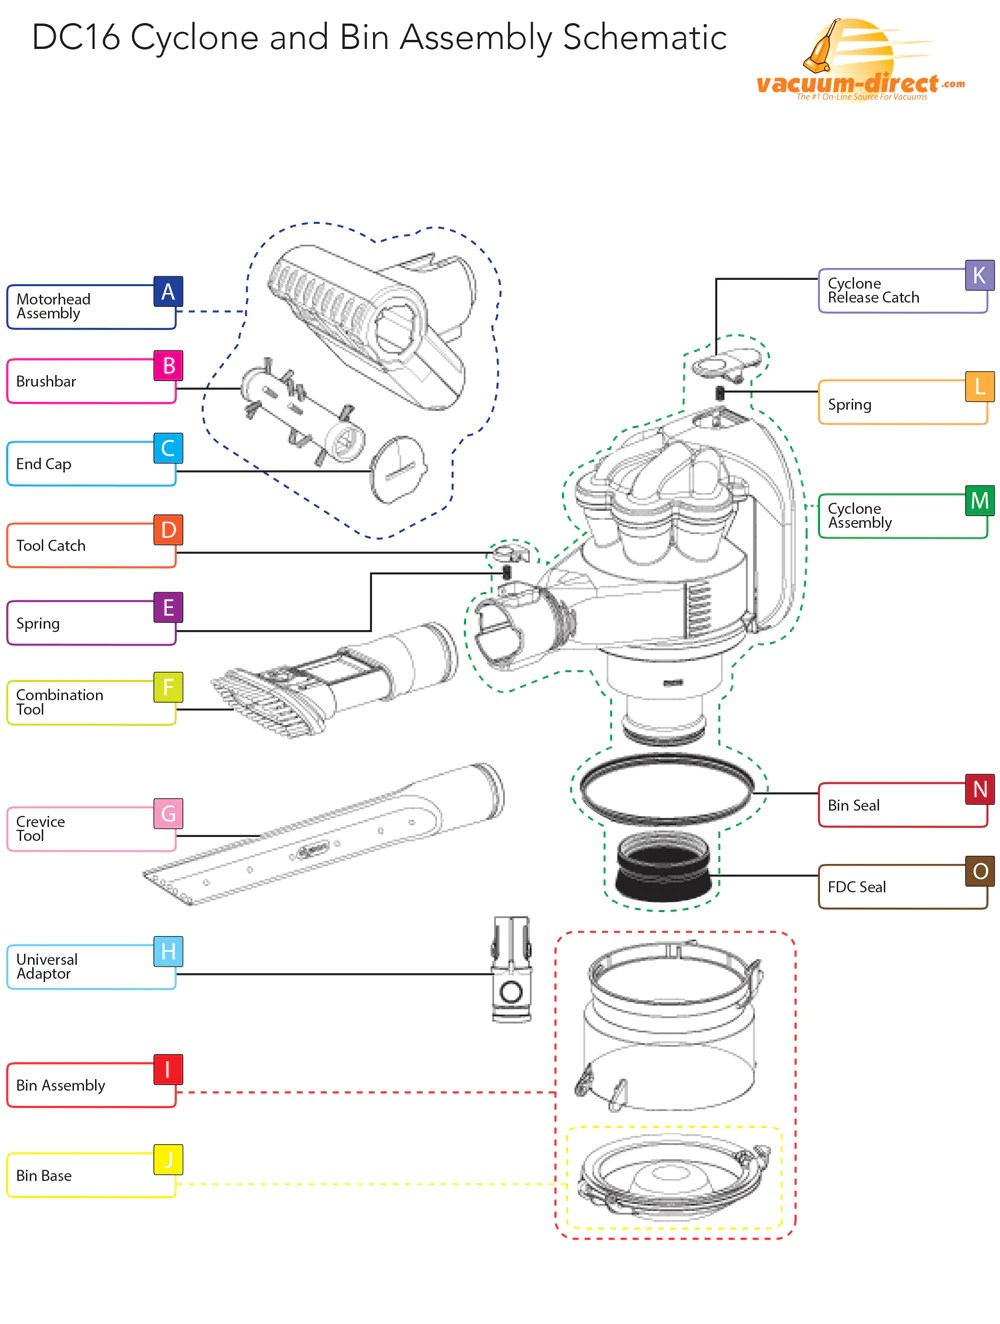 click here to view larger image dyson dc16 cyclone bin parts diagram [ 1000 x 1324 Pixel ]